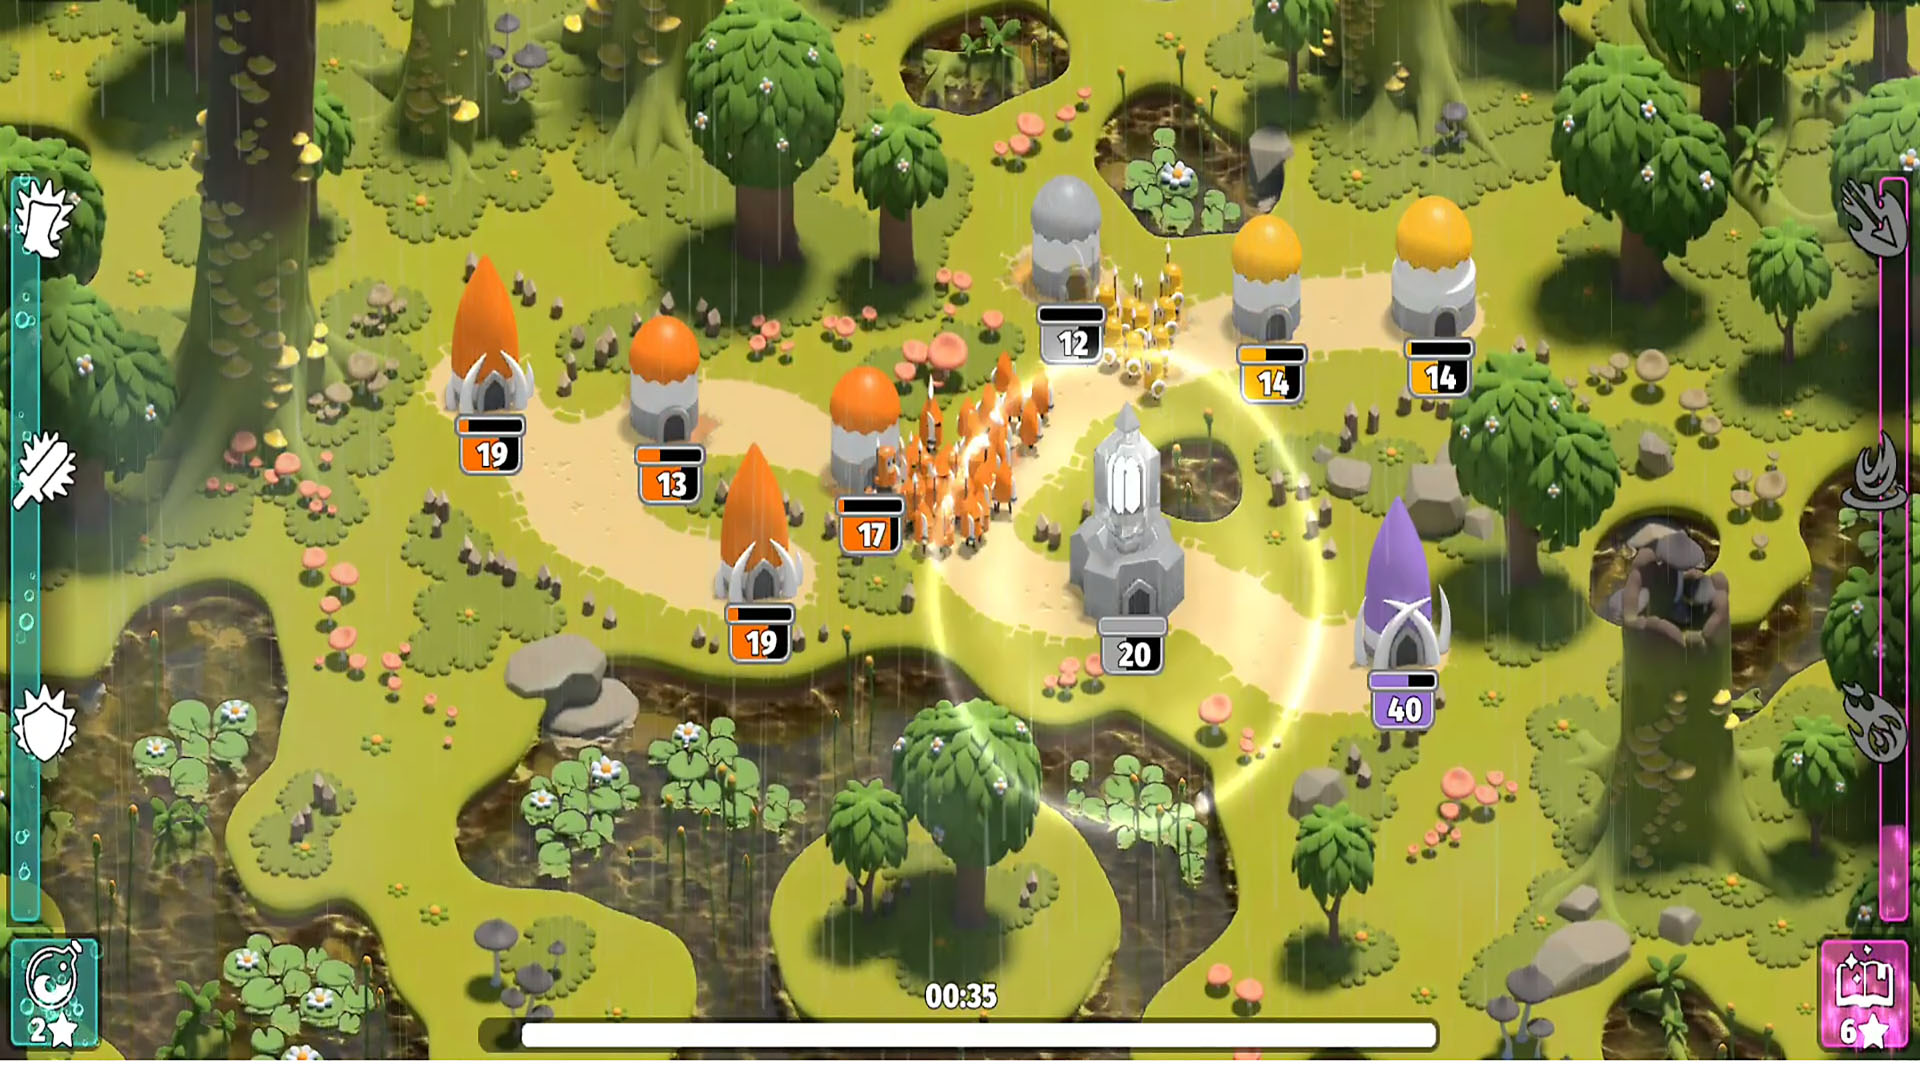 BattleTime 2 - Real Time Strategy Offline Game para Android